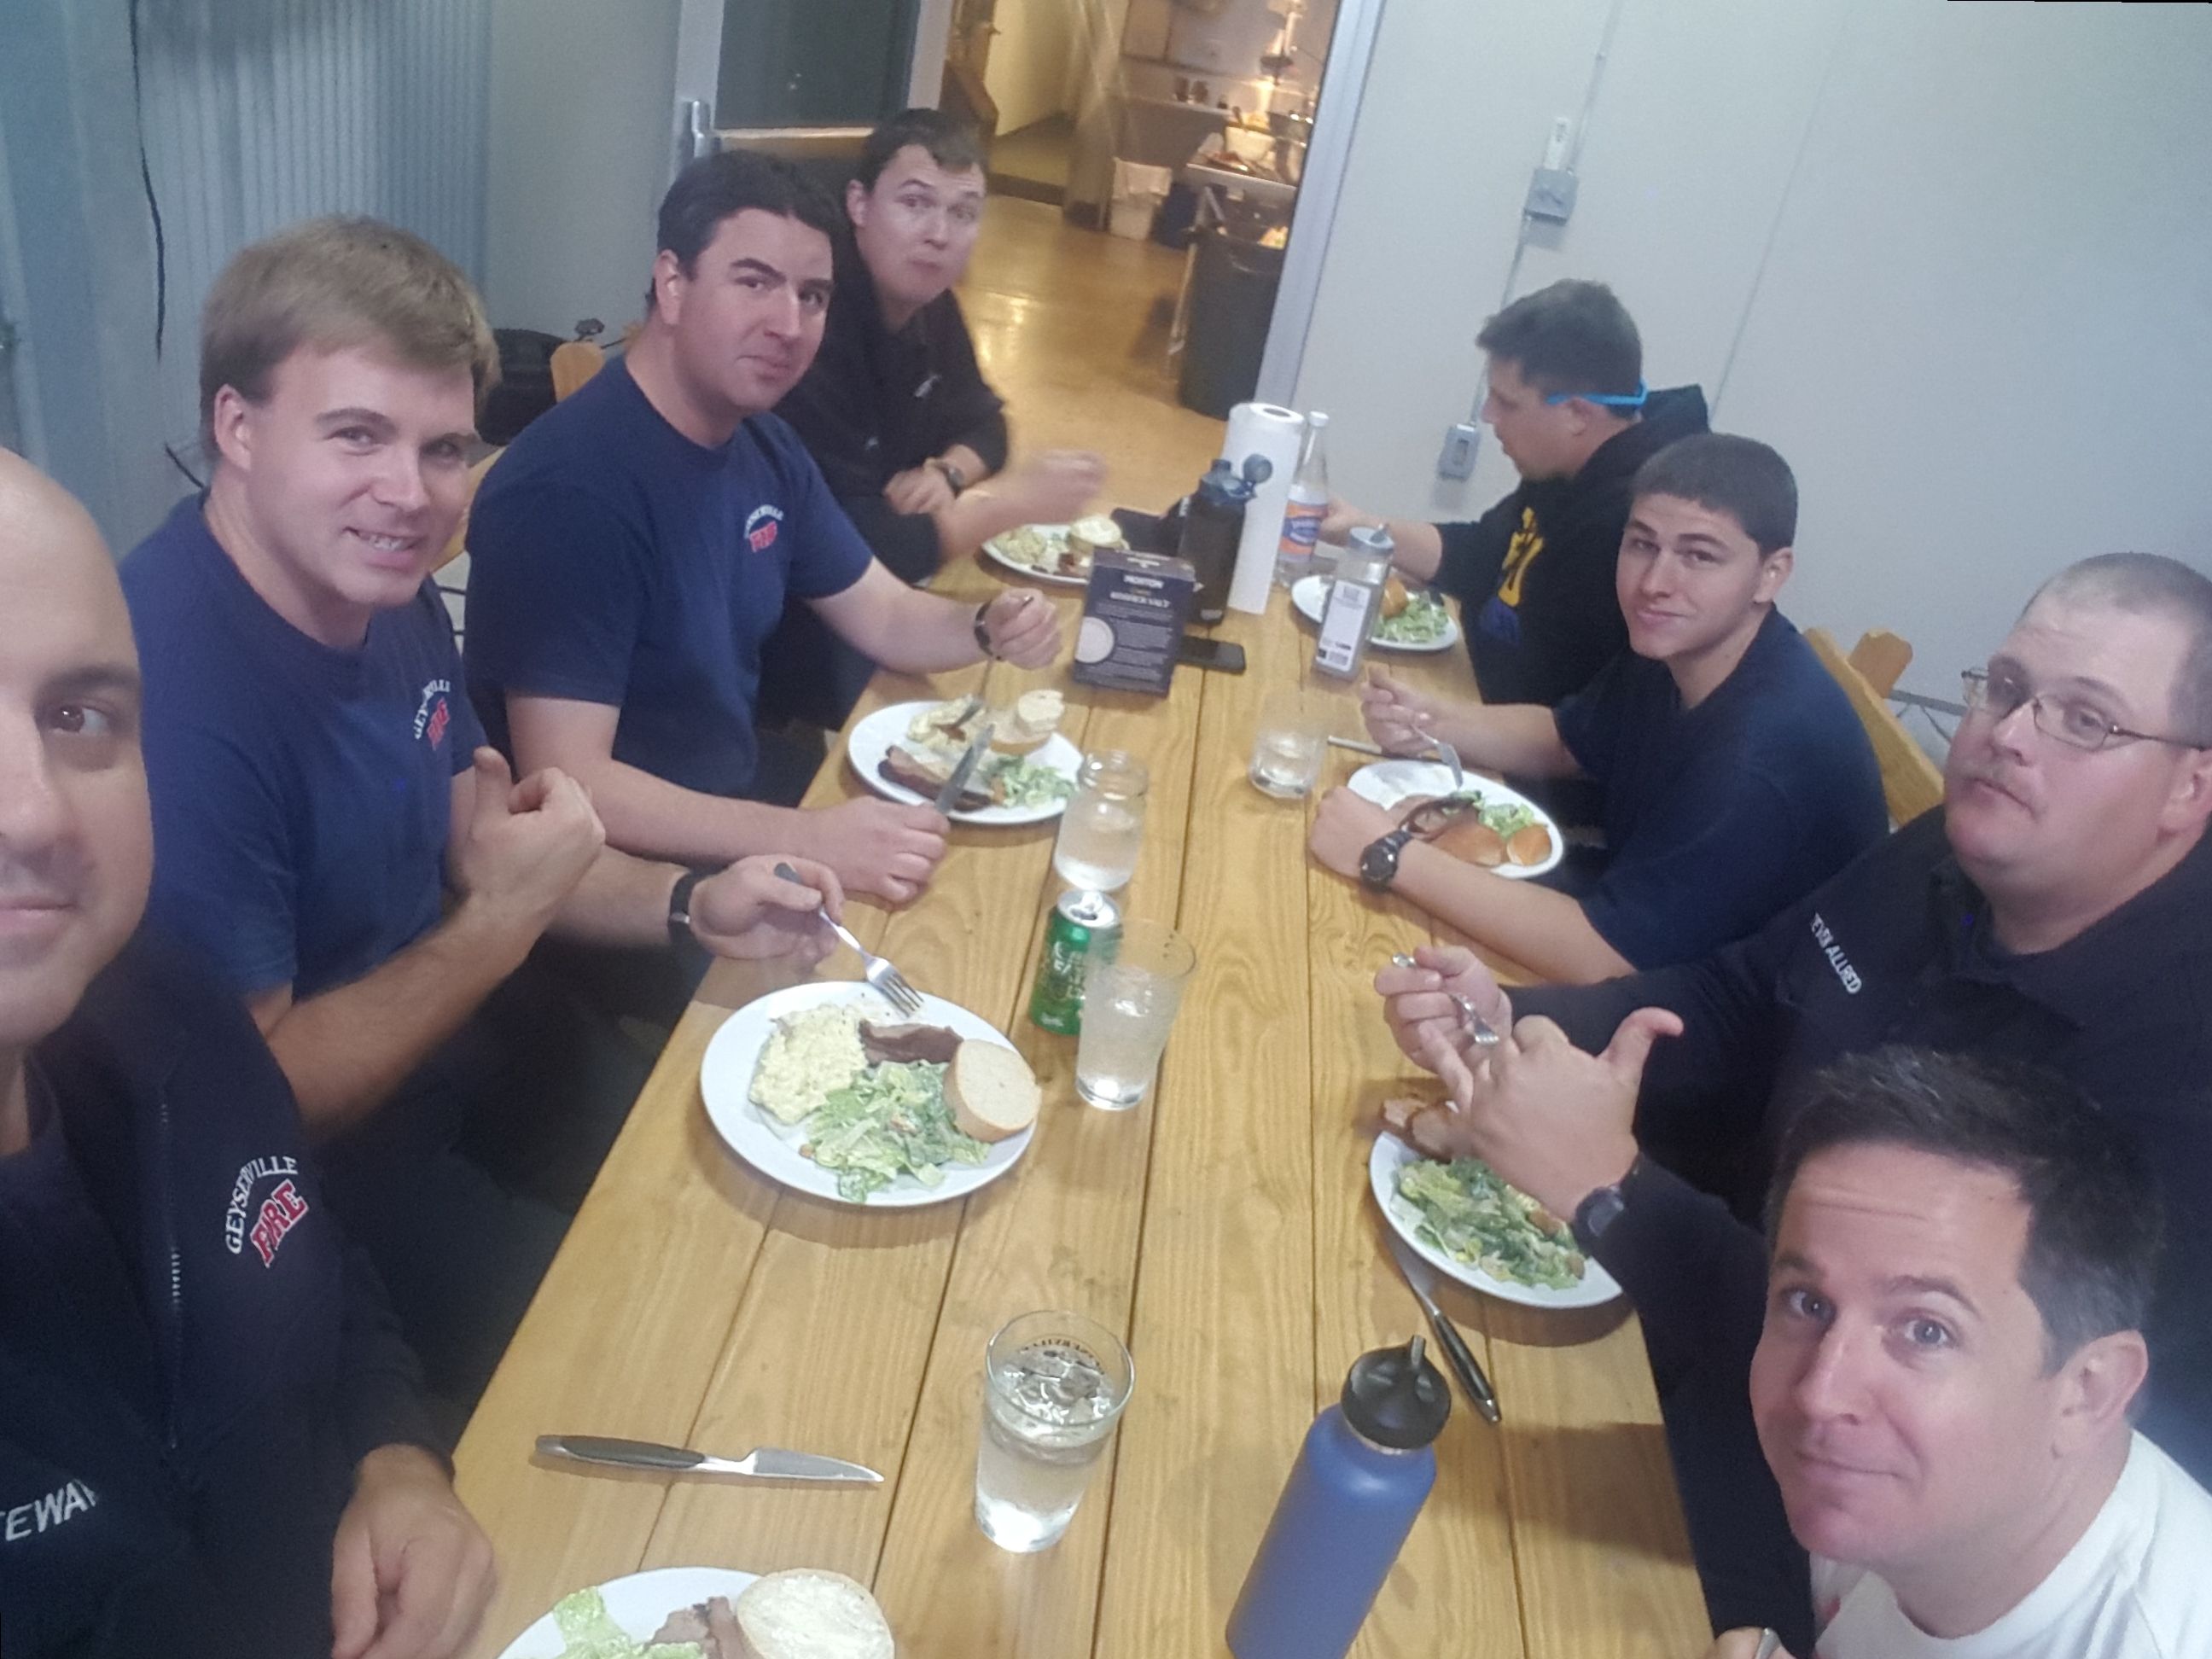 Geyserville fireman eating lunch